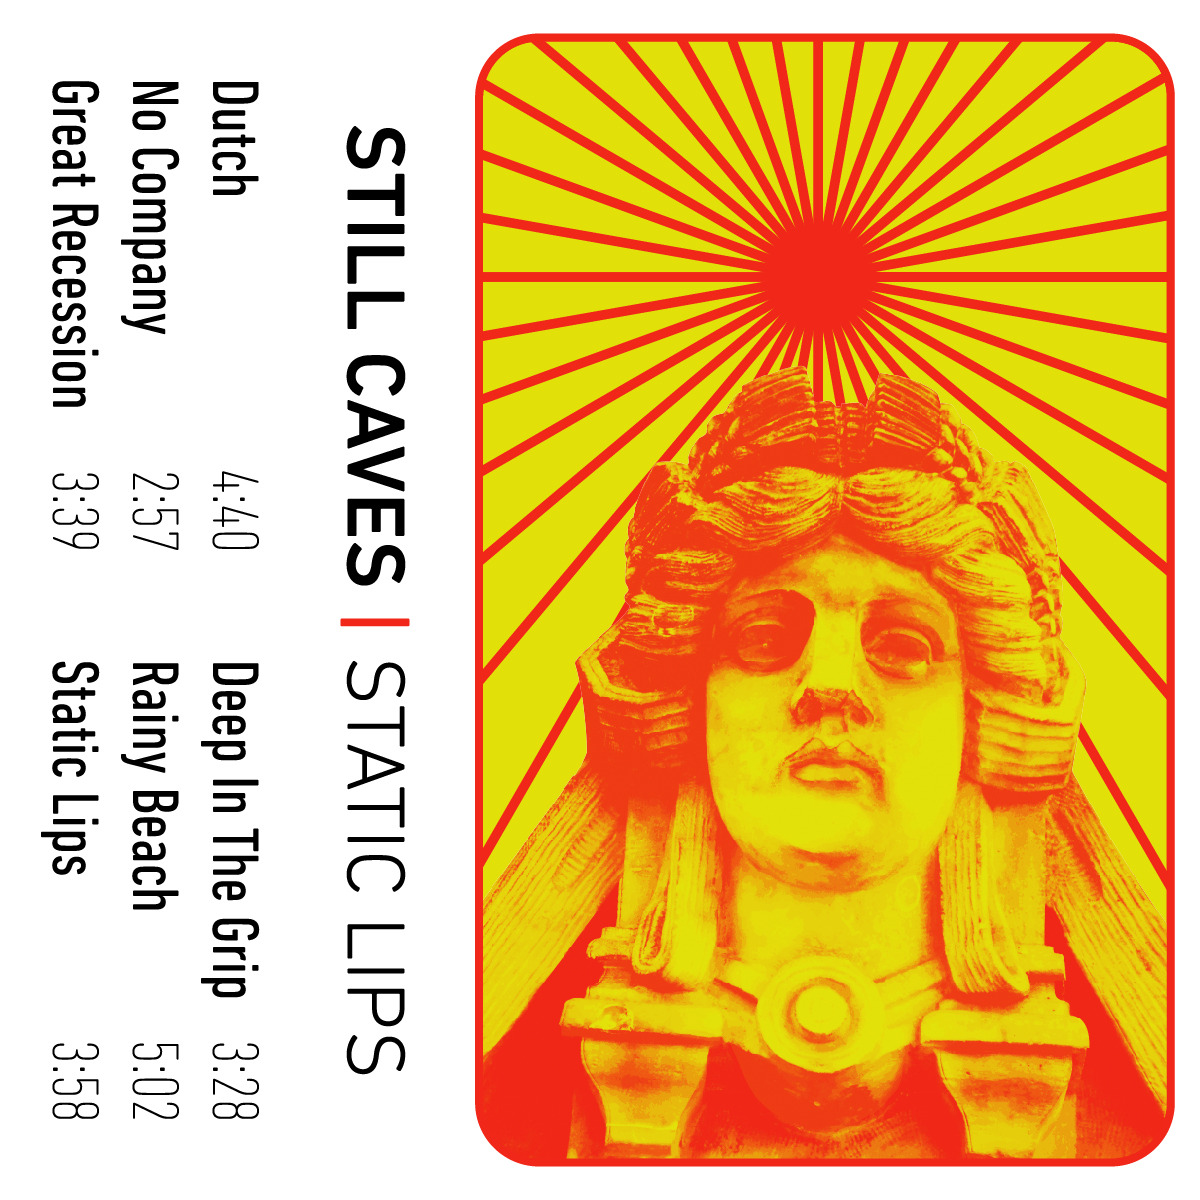 "<a href=""http://stillcaves.bandcamp.com/album/static-lips"" data-mce-href=""http://stillcaves.bandcamp.com/album/static-lips"">Static Lips by Still Caves</a> This is on repeat."